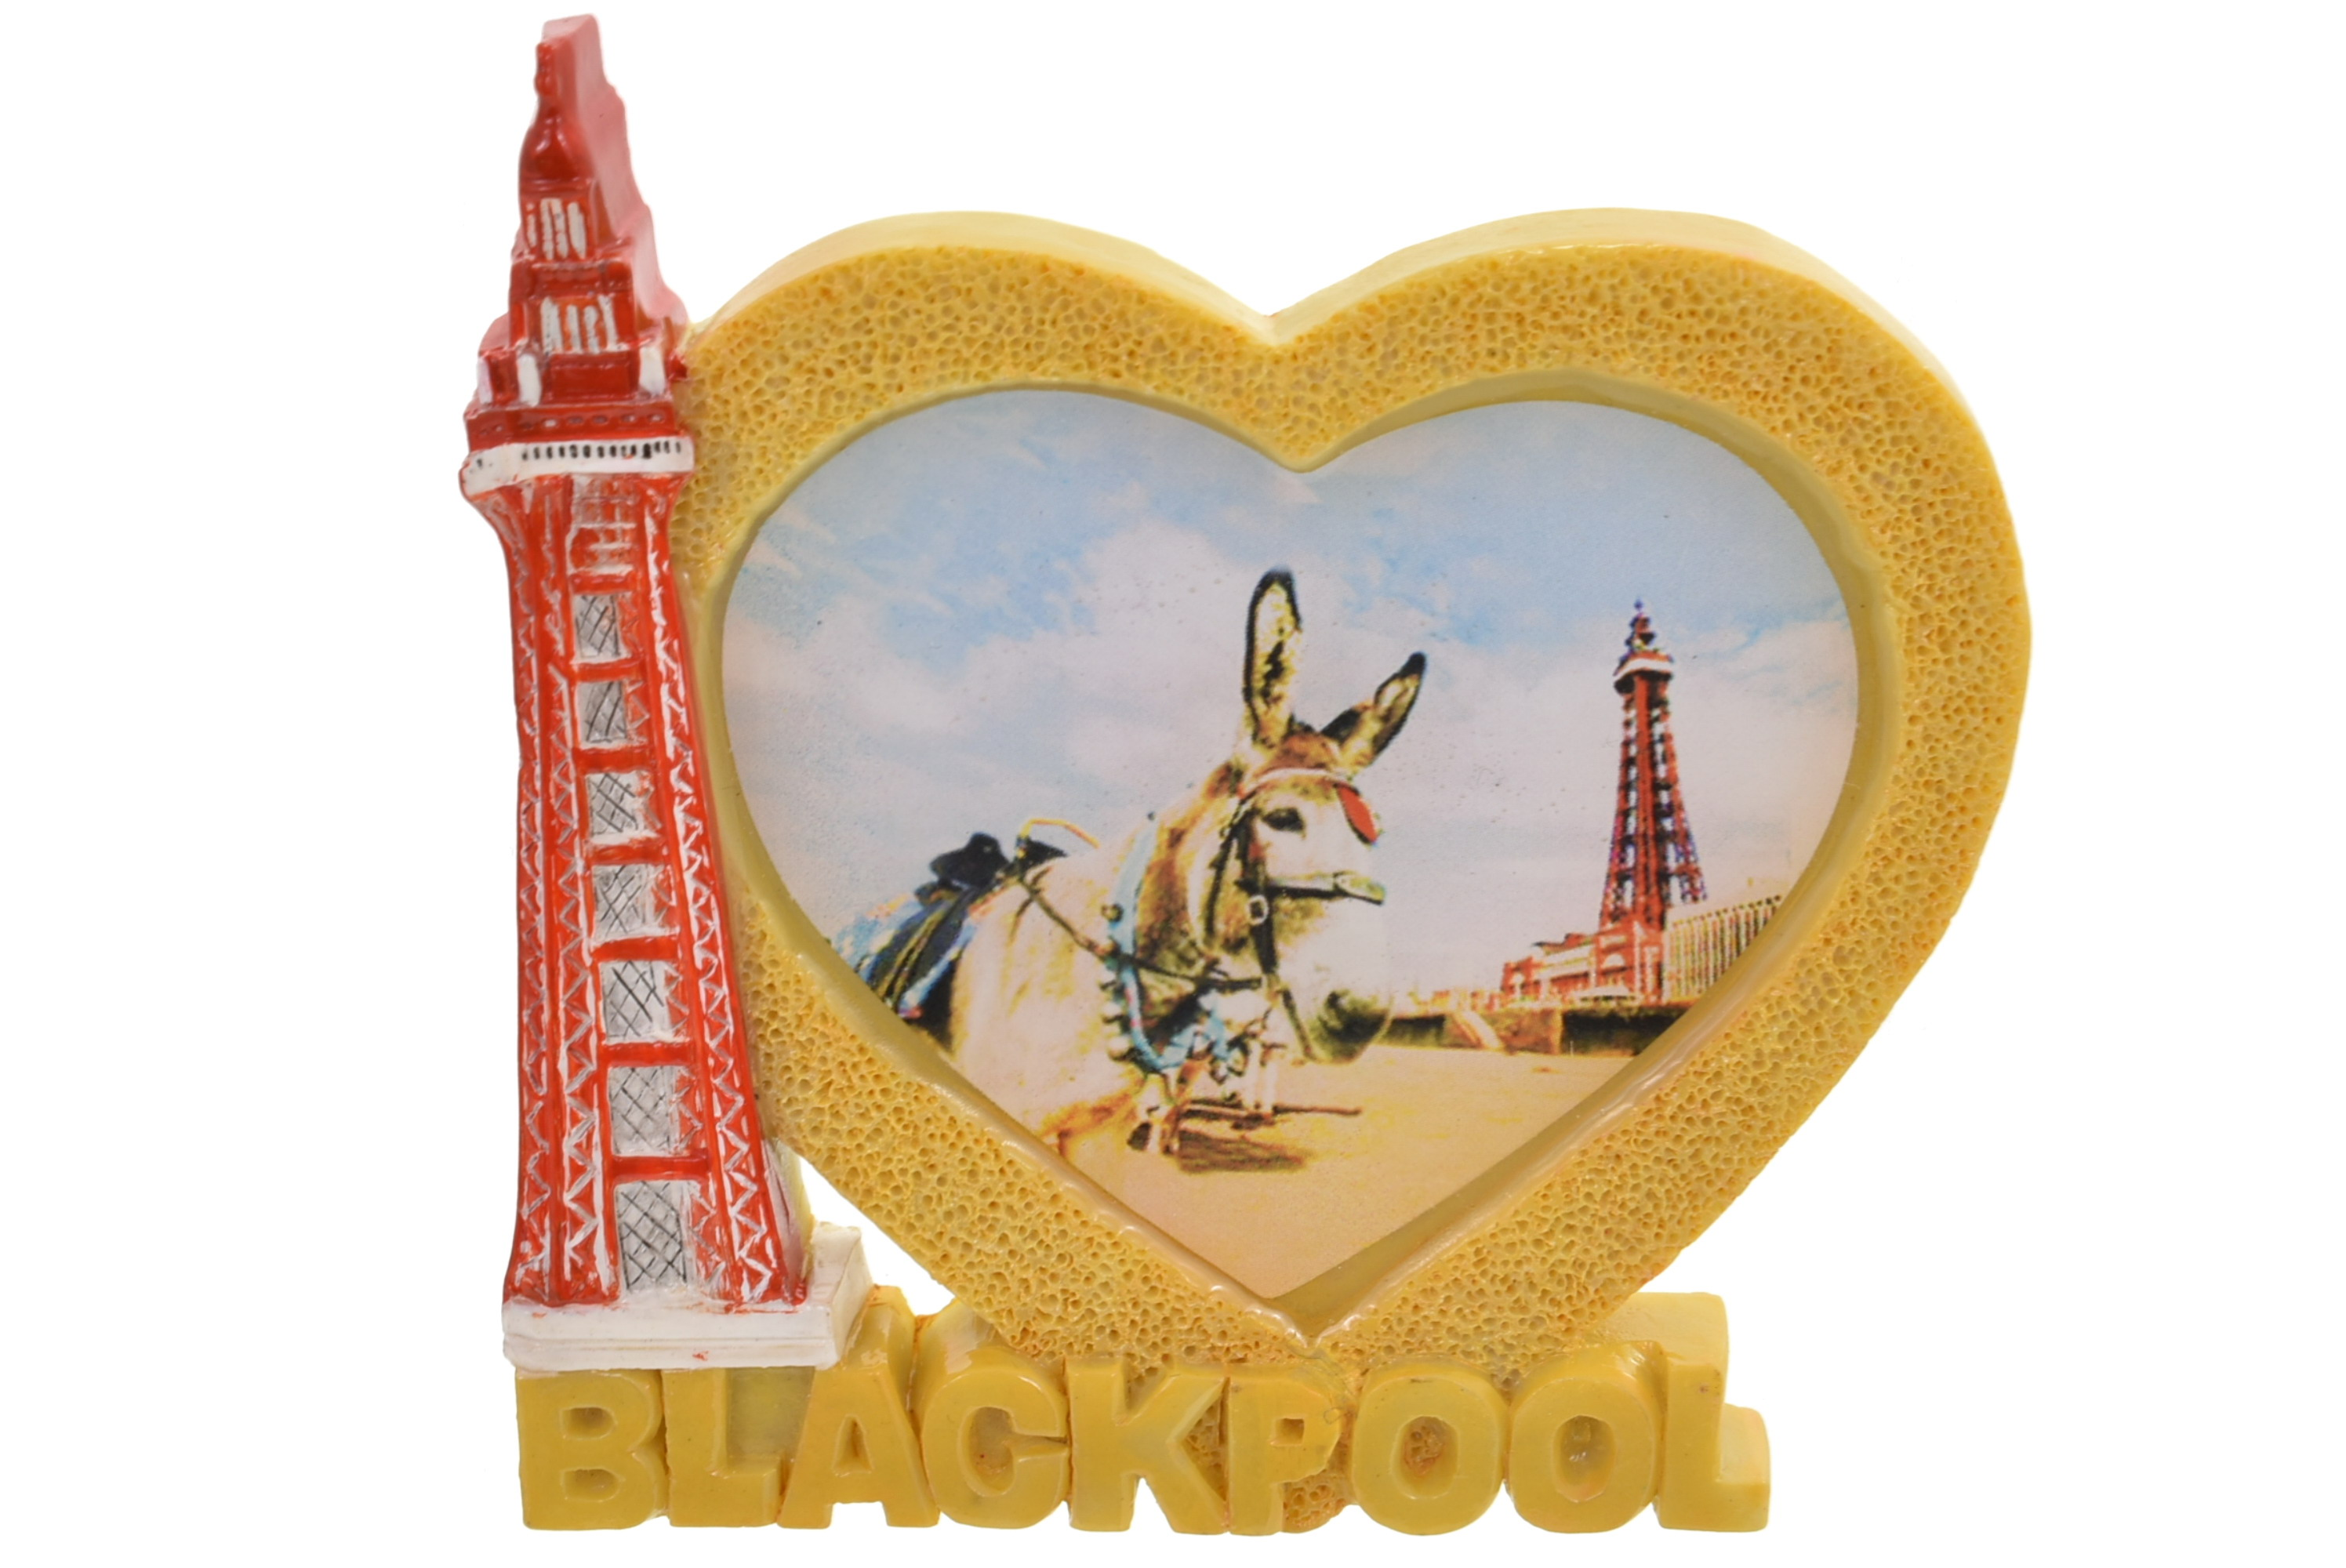 Blackpool Heart Tower Donkey Magnet